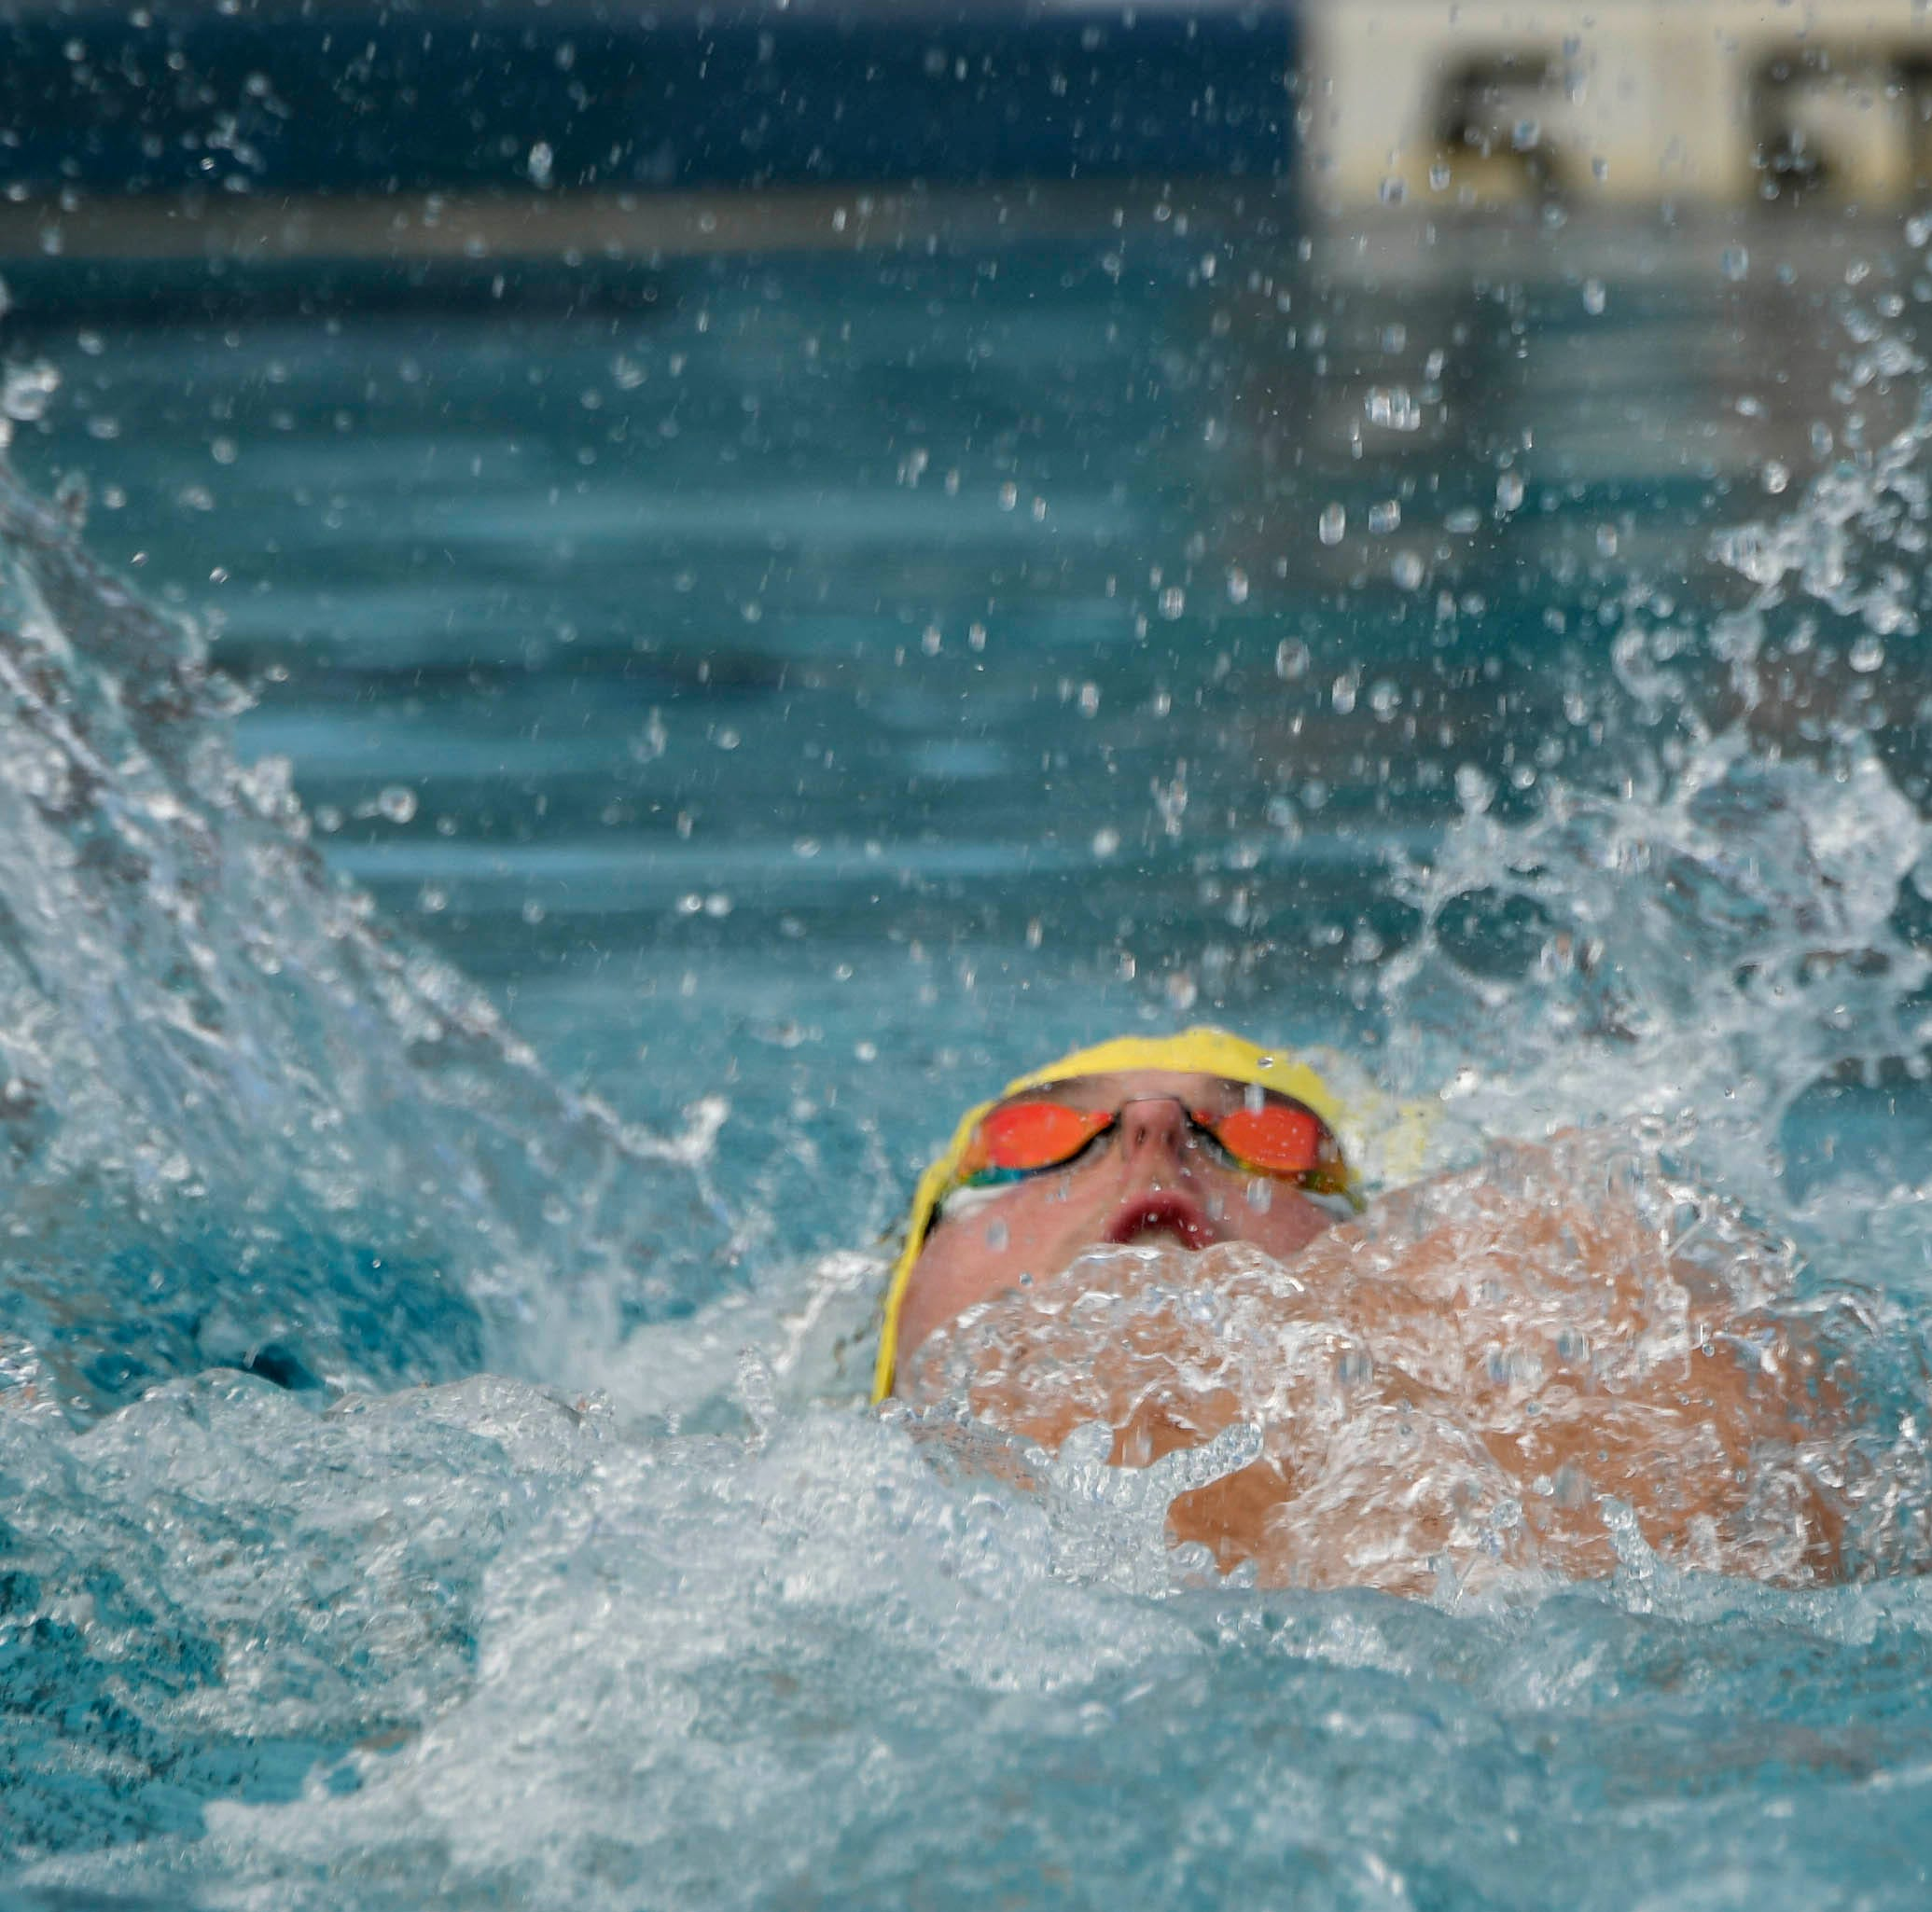 Kravchenko's double state swimming wins among several Brevard medals